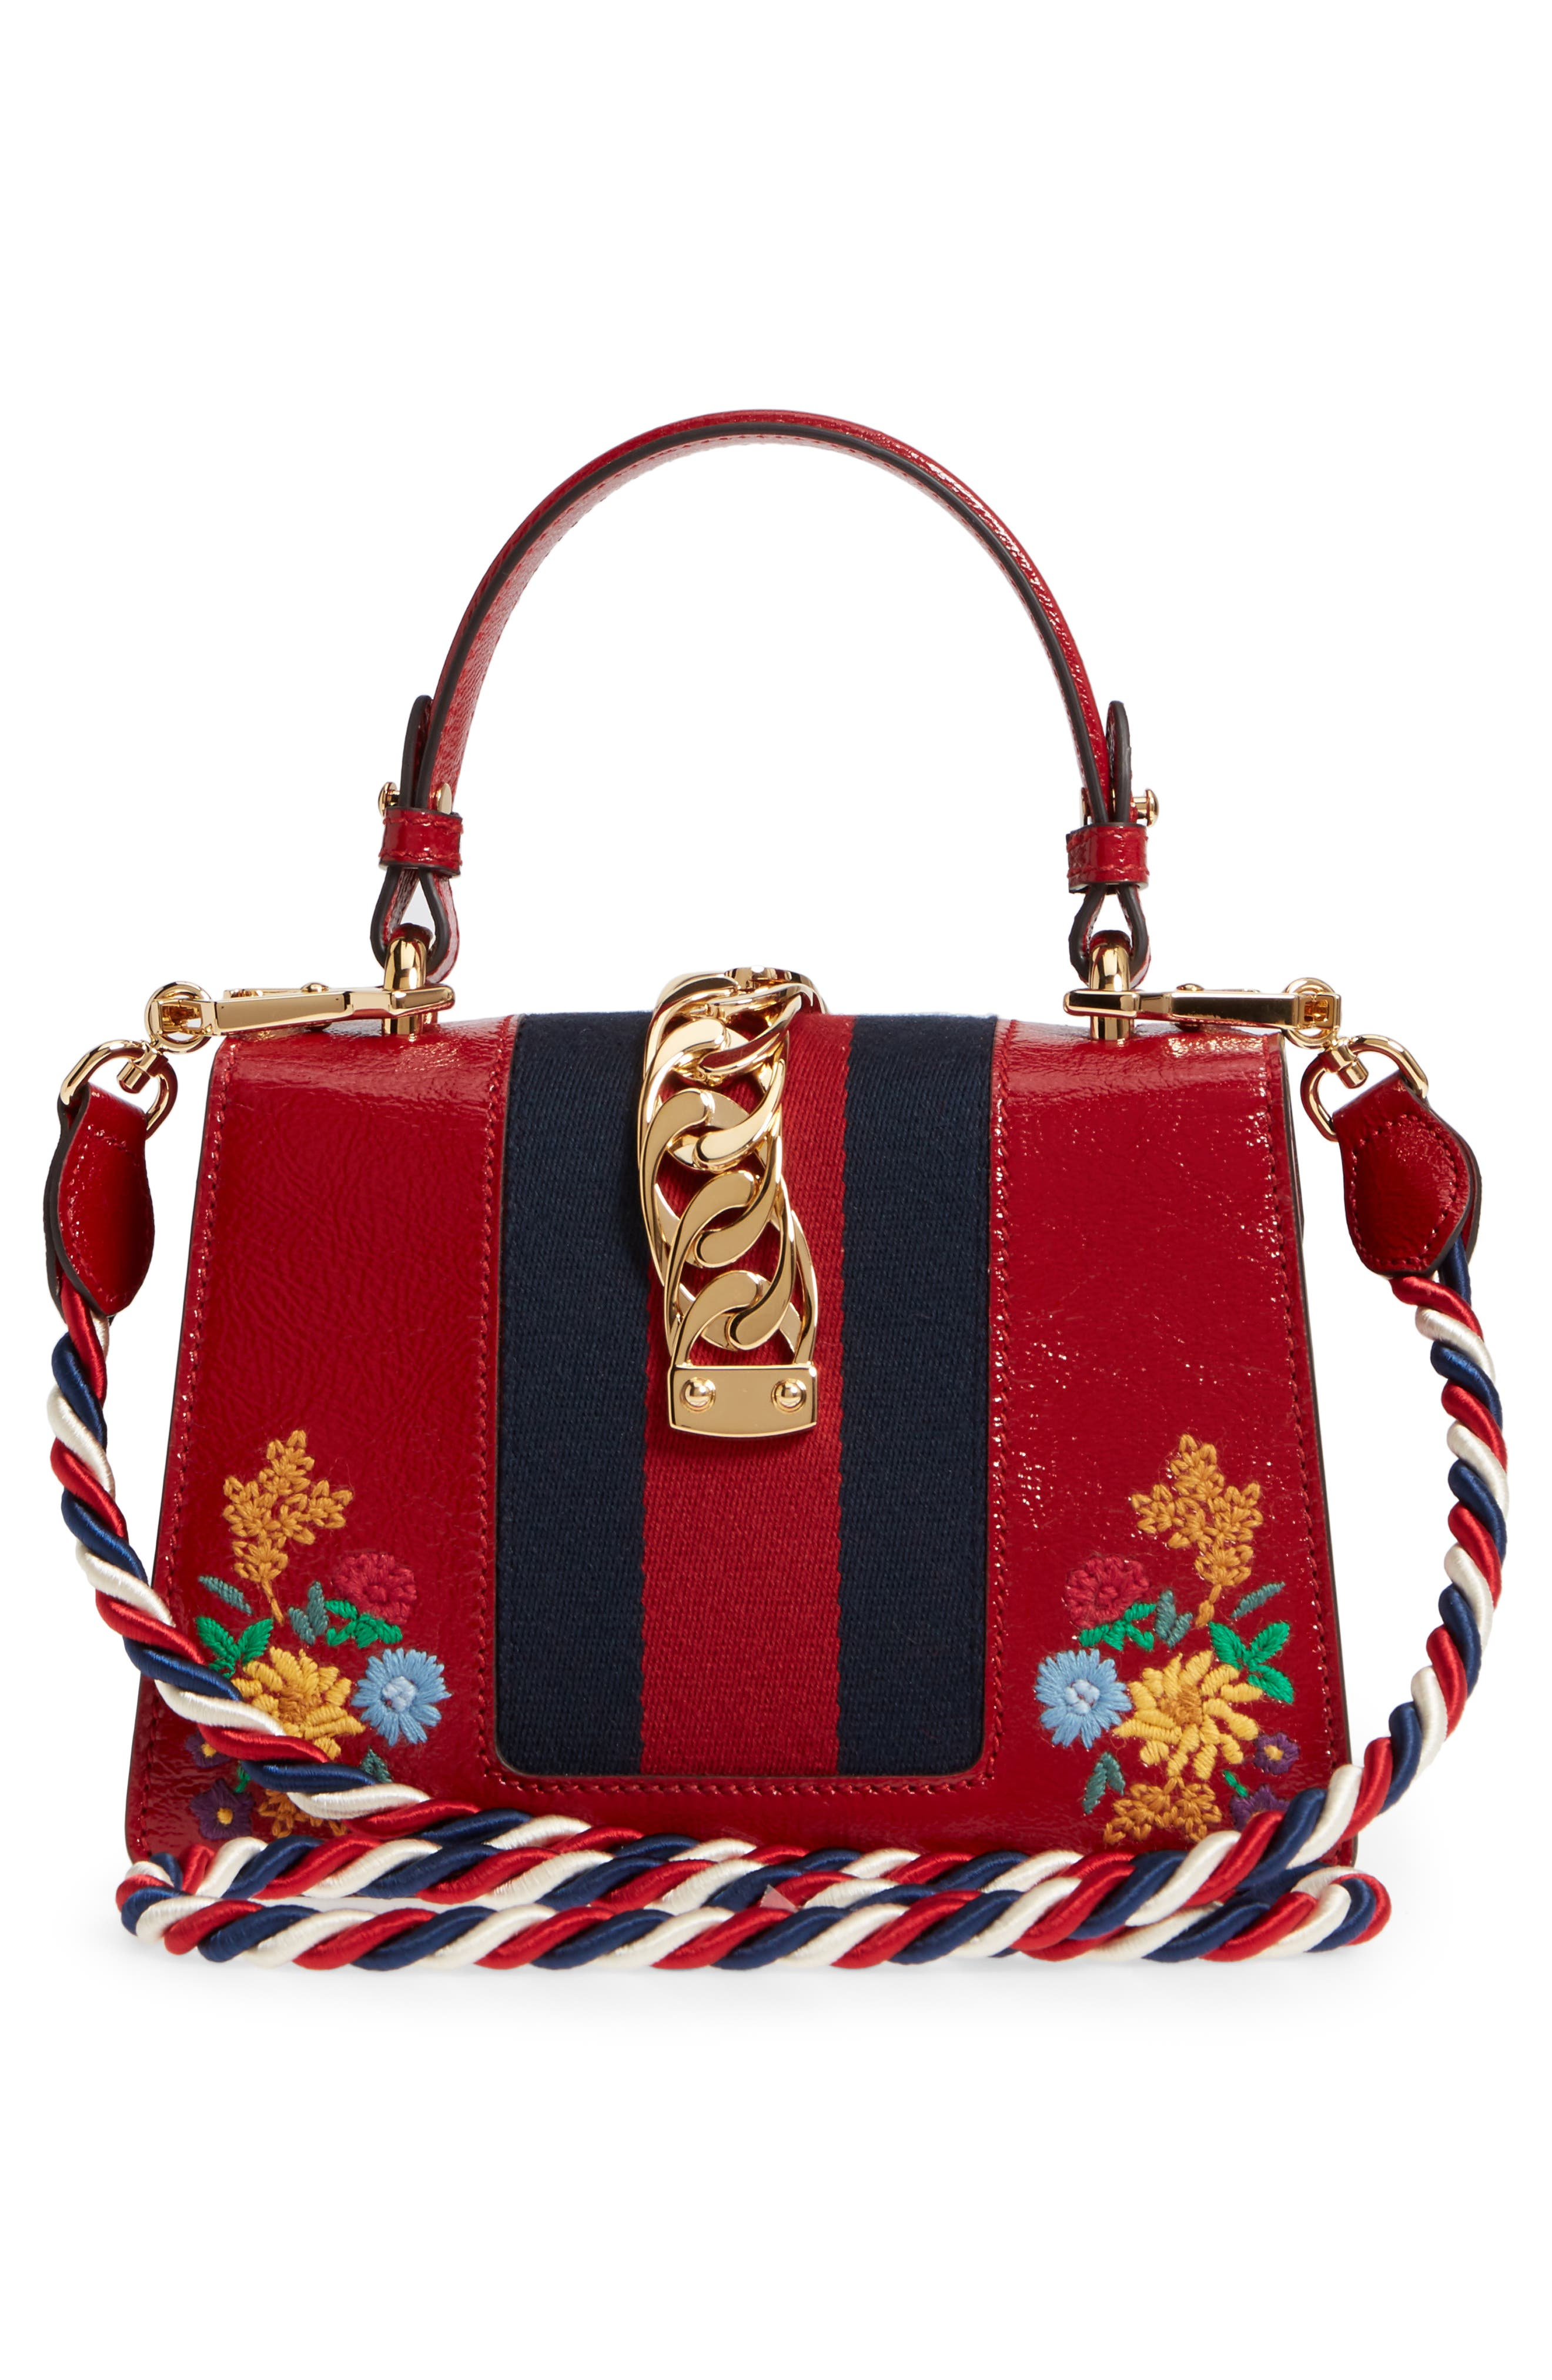 Mini Sylvie Flower Embroidery Leather Shoulder Bag,                             Alternate thumbnail 4, color,                             Hibiscus Red Multi/ Blue